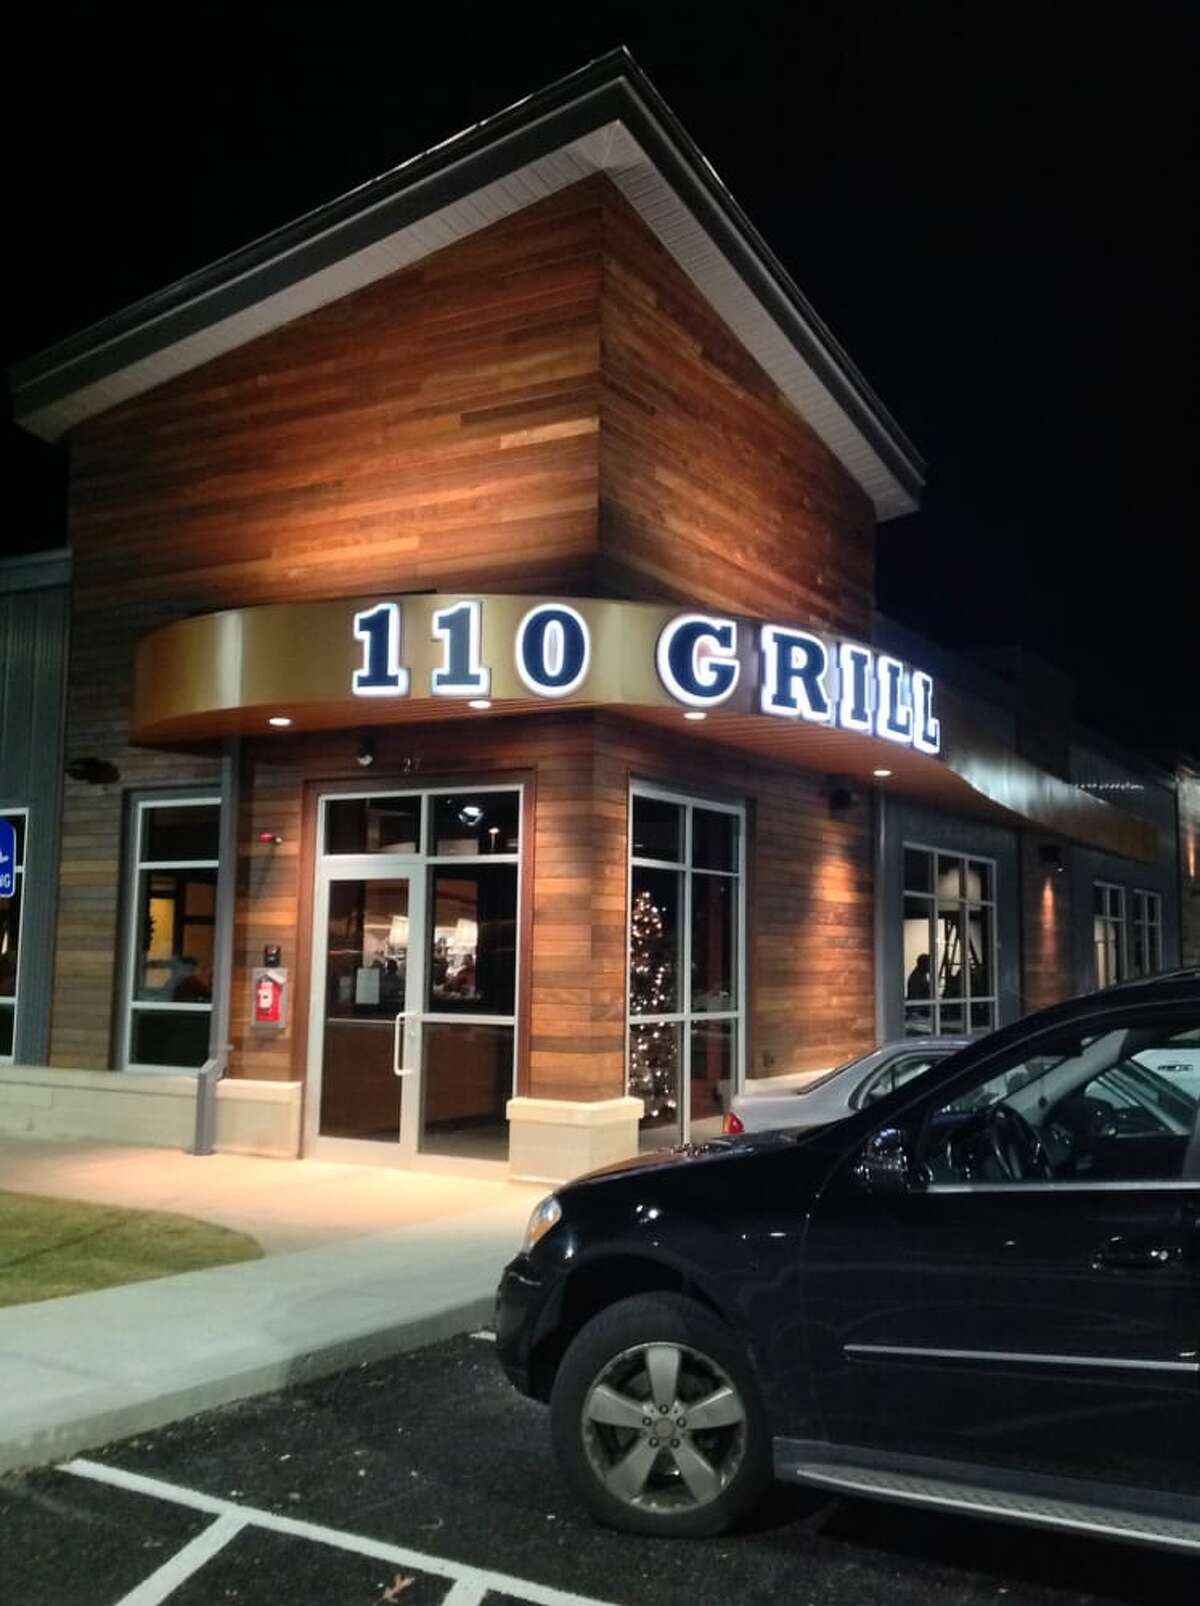 110 Grill in Nashua, N.H.